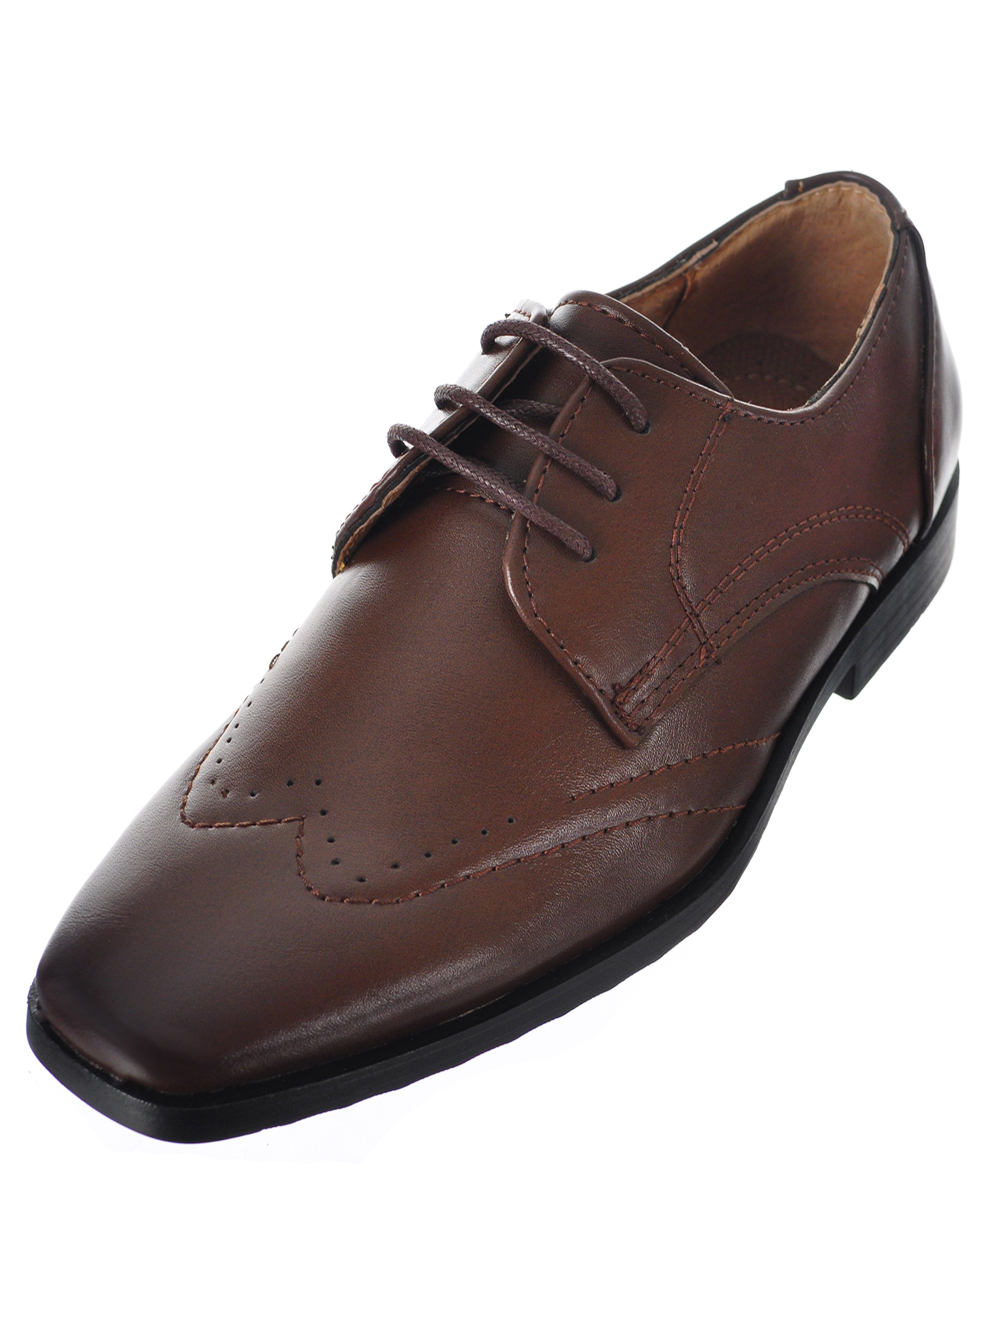 Boys' Dress Shoes (Sizes 6 - 7)